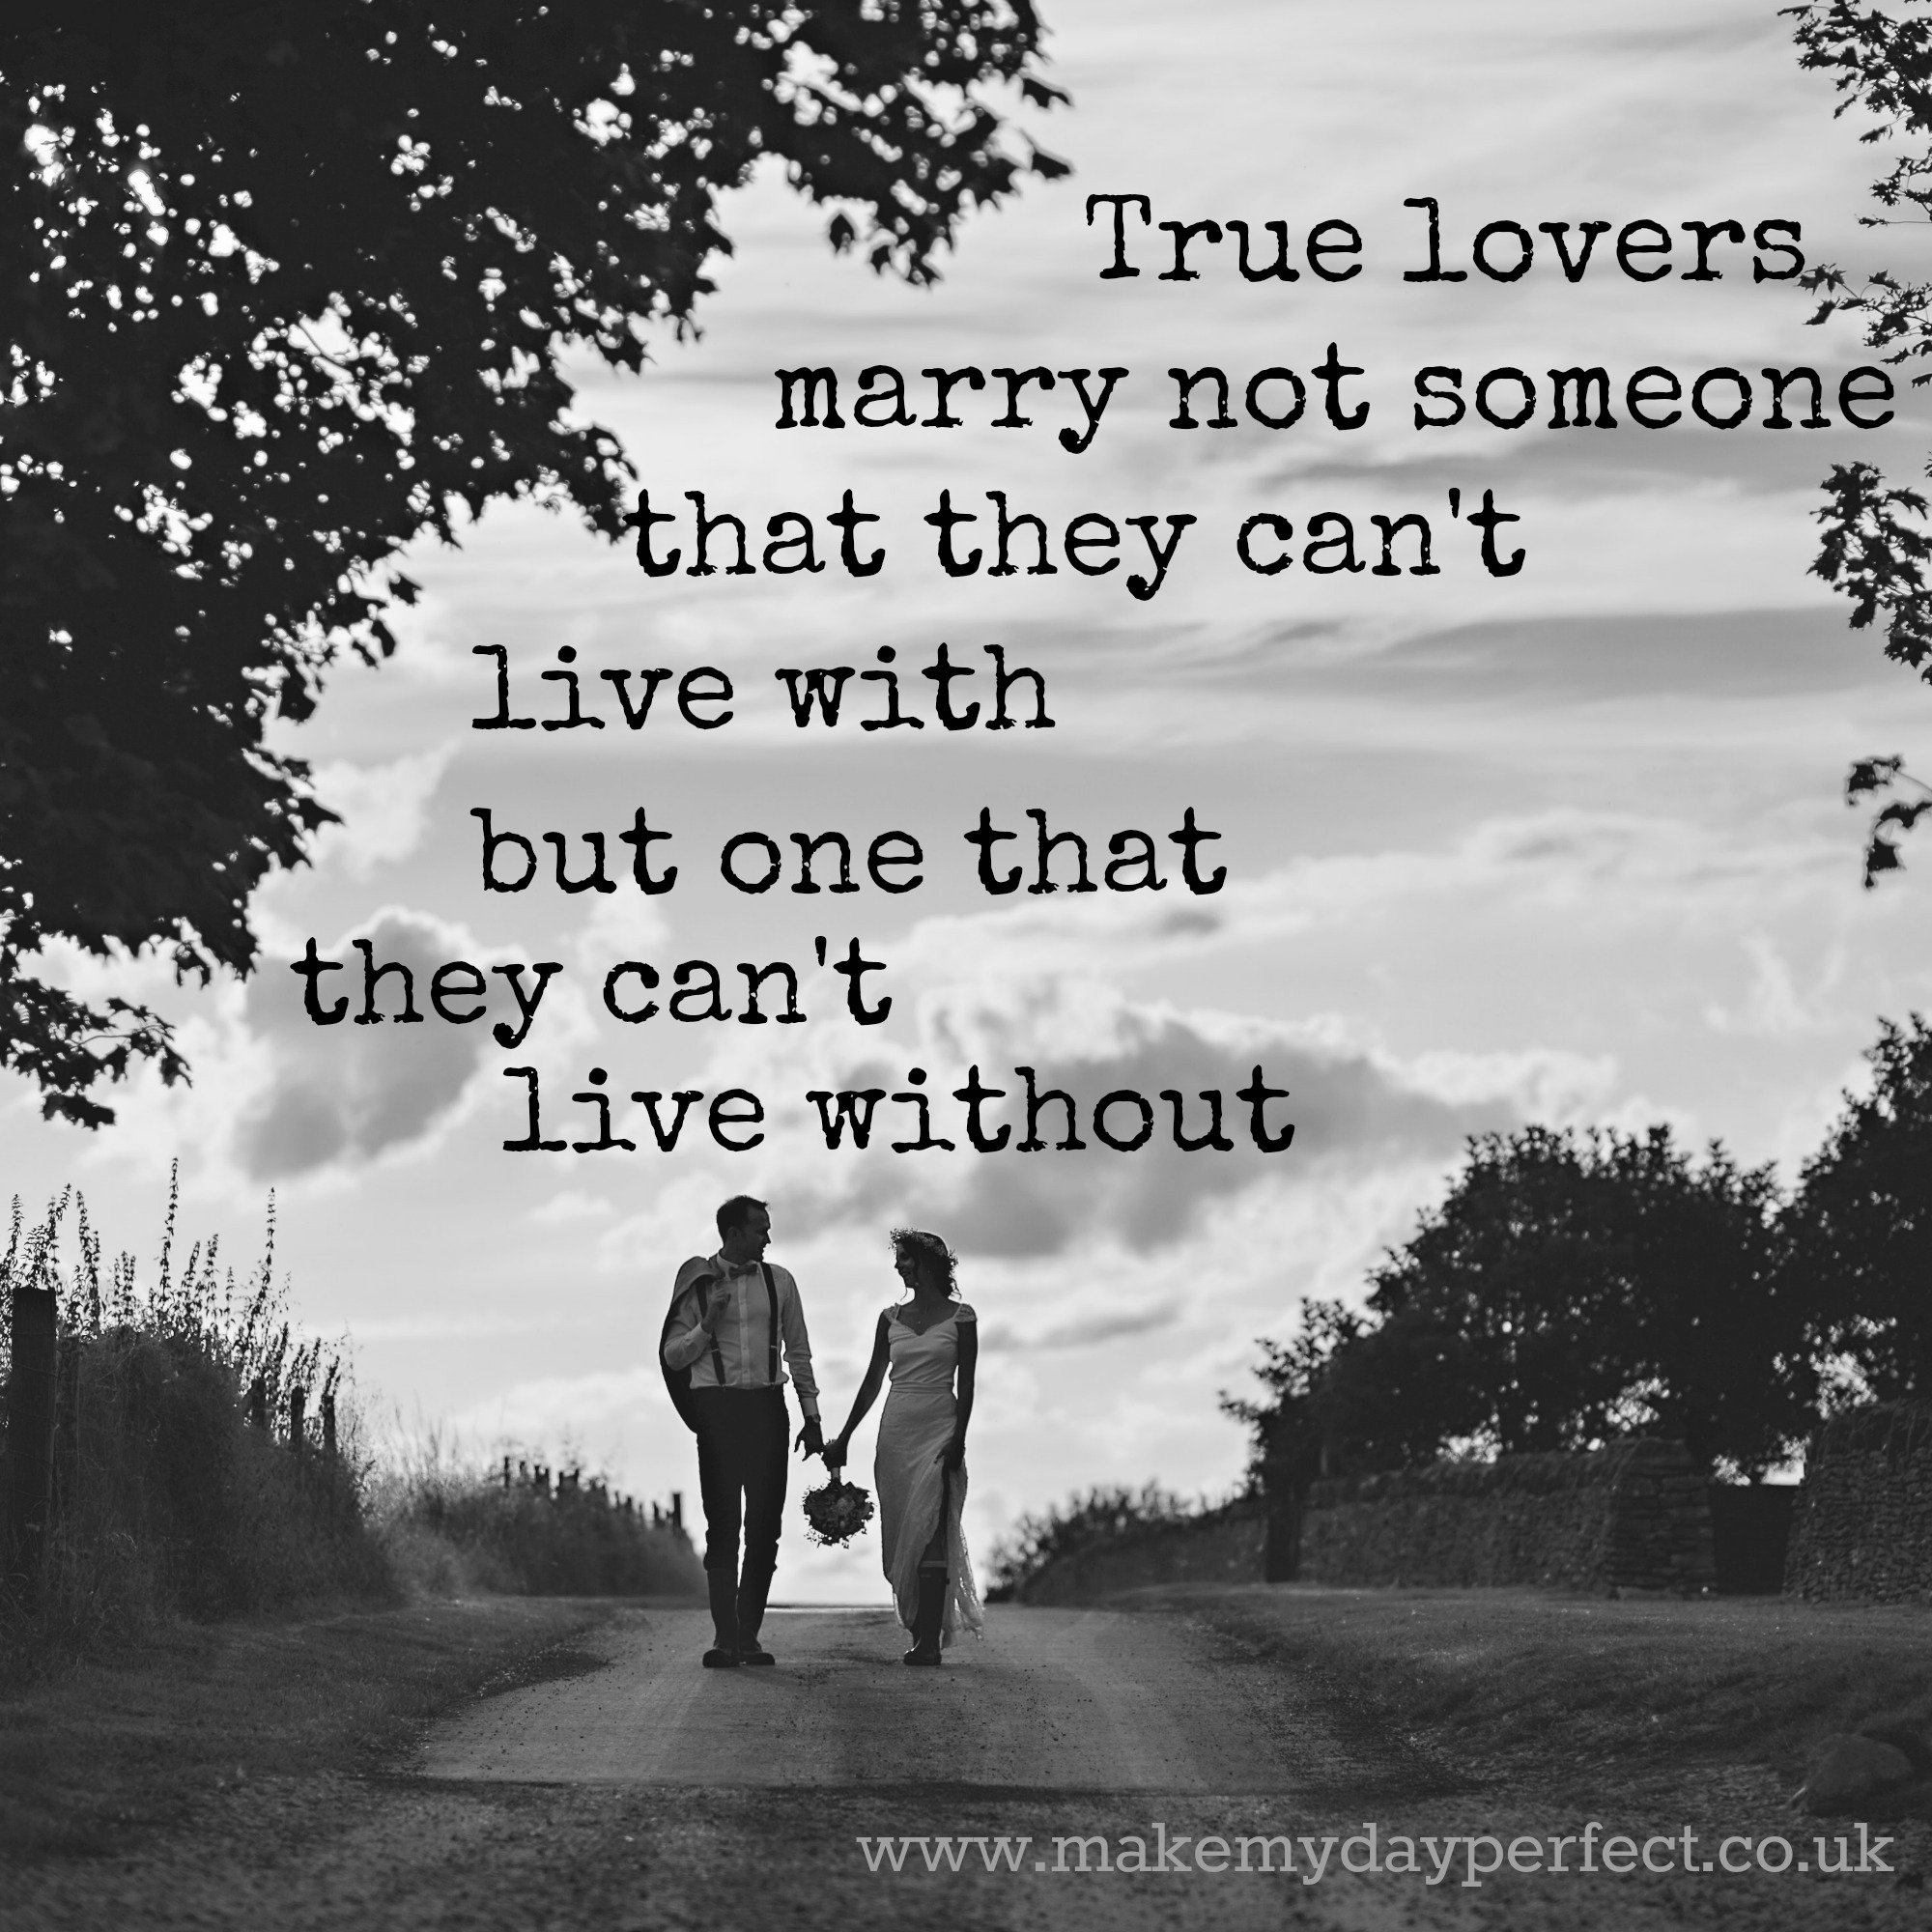 Love Marriage Quotes Love Quotes  Make My Day Perfect